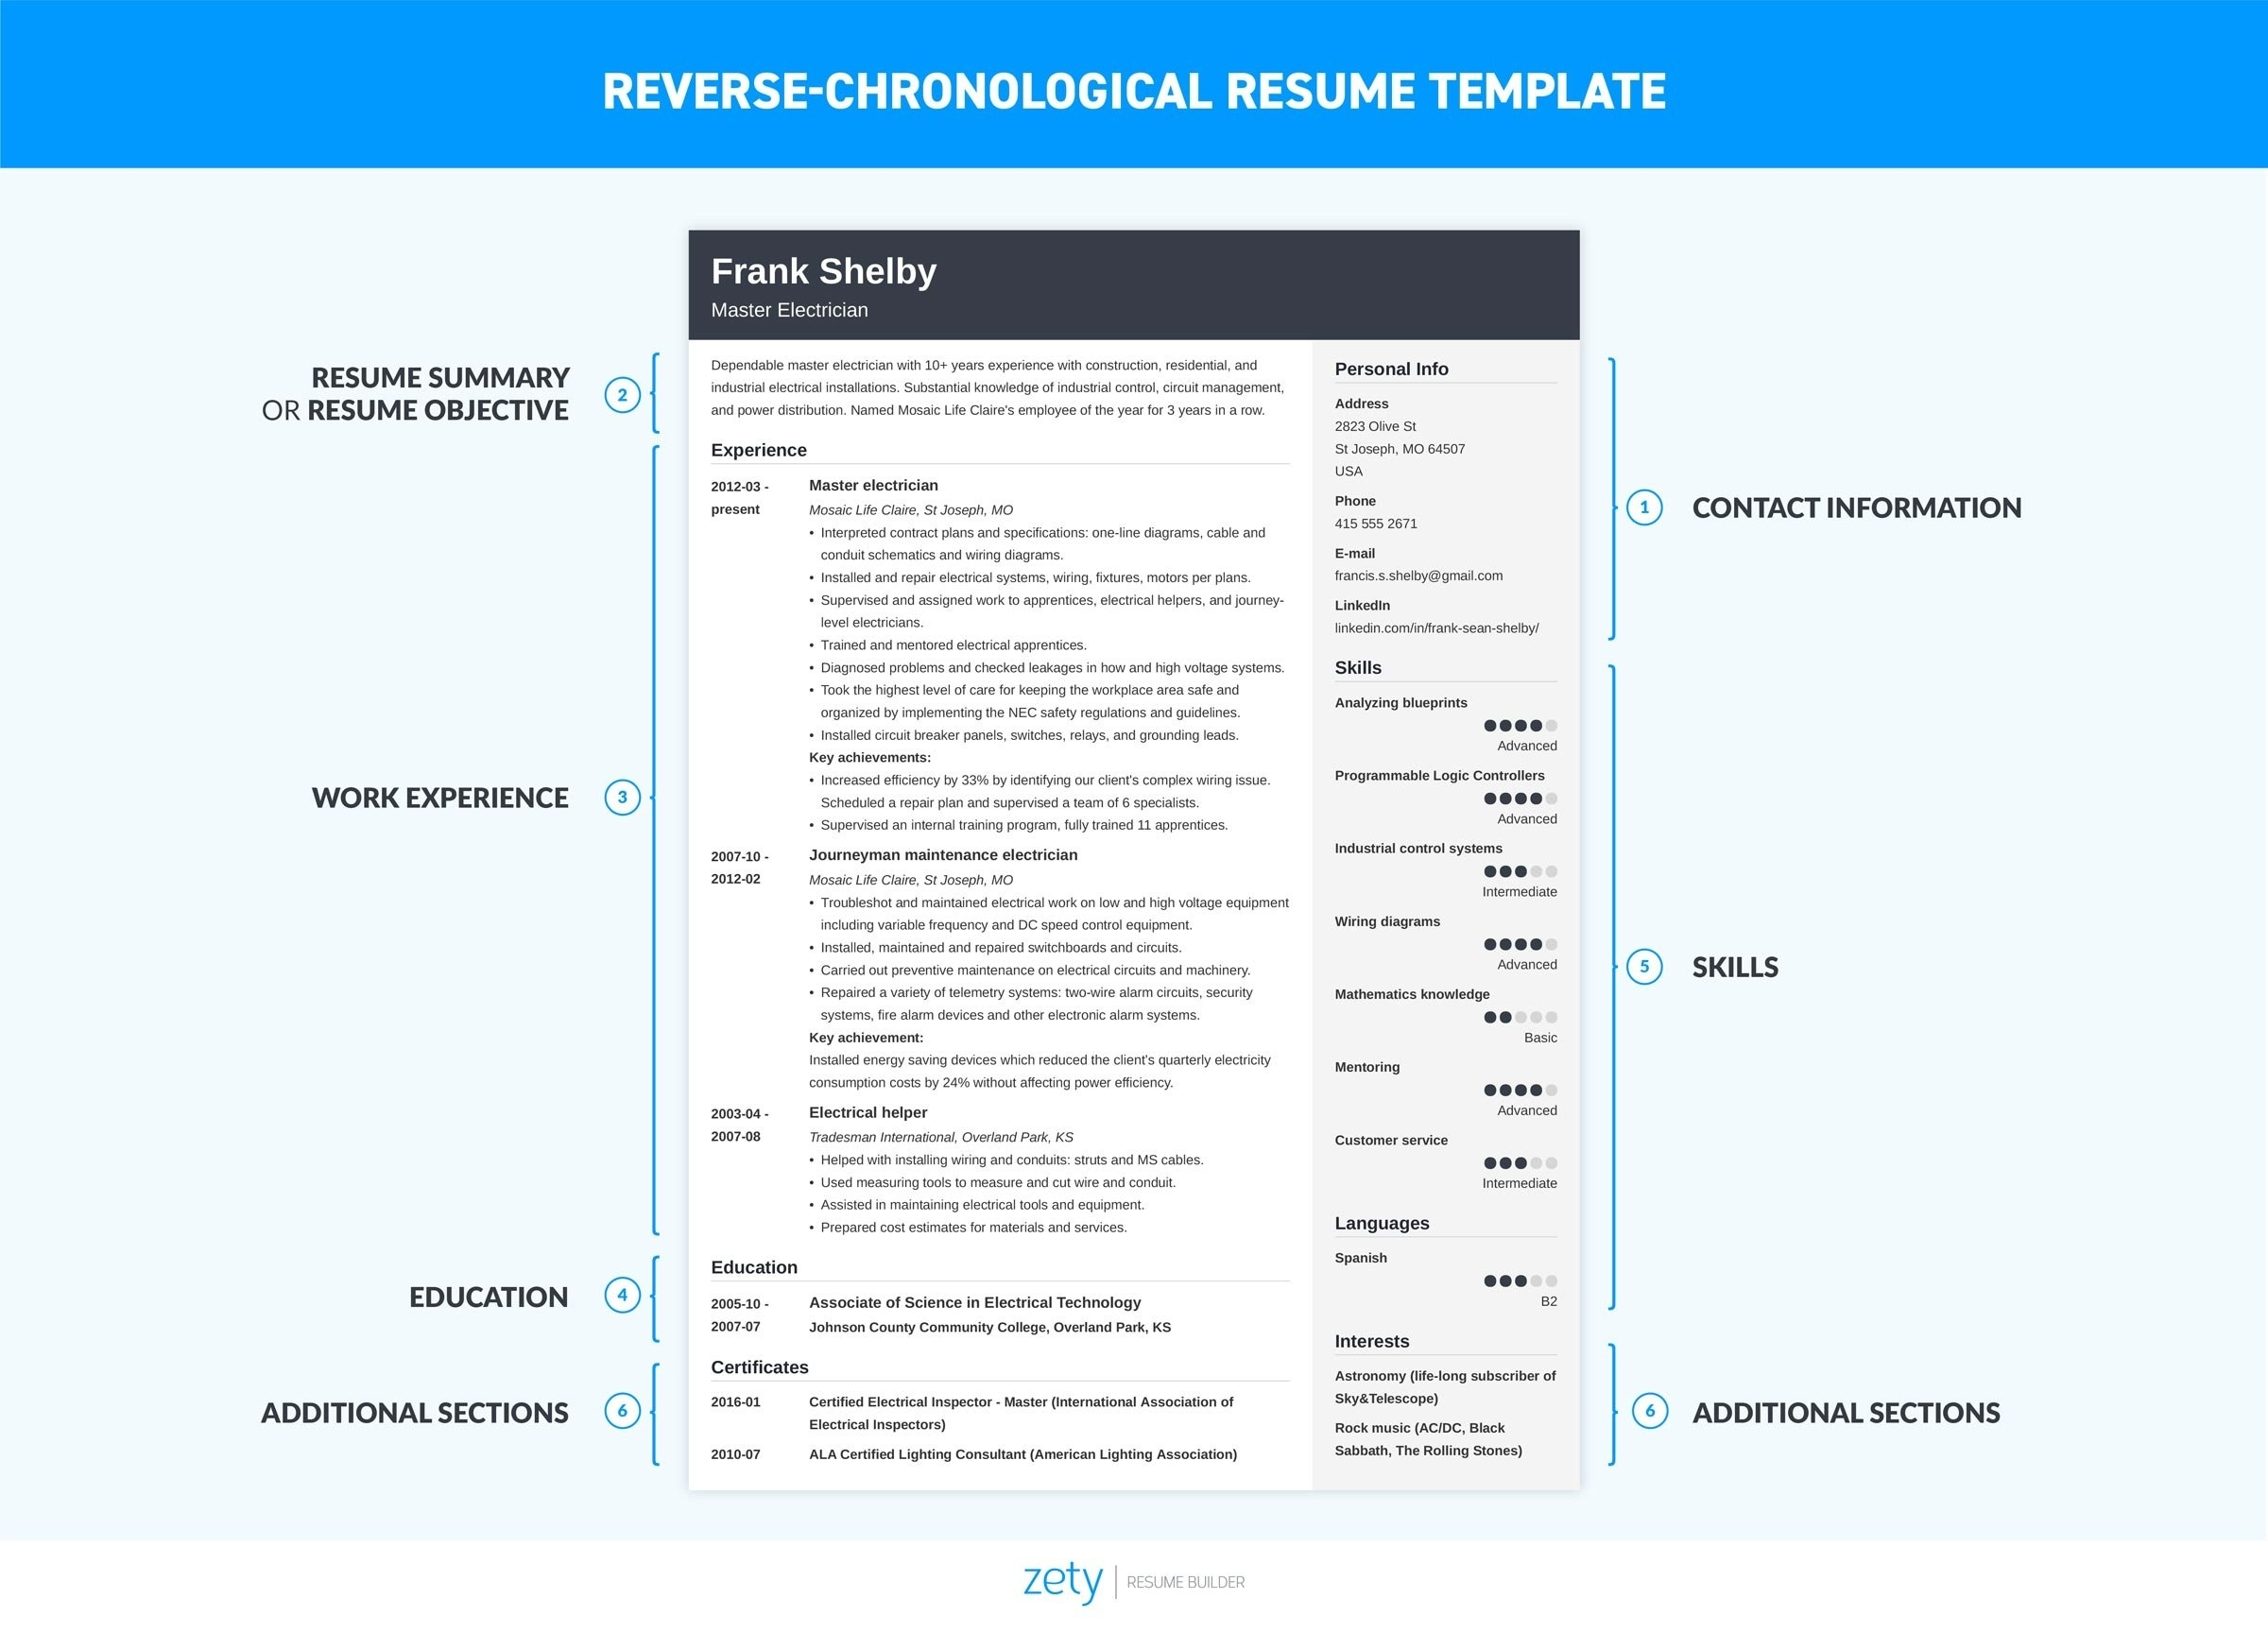 Sample Chronological Resume Templates